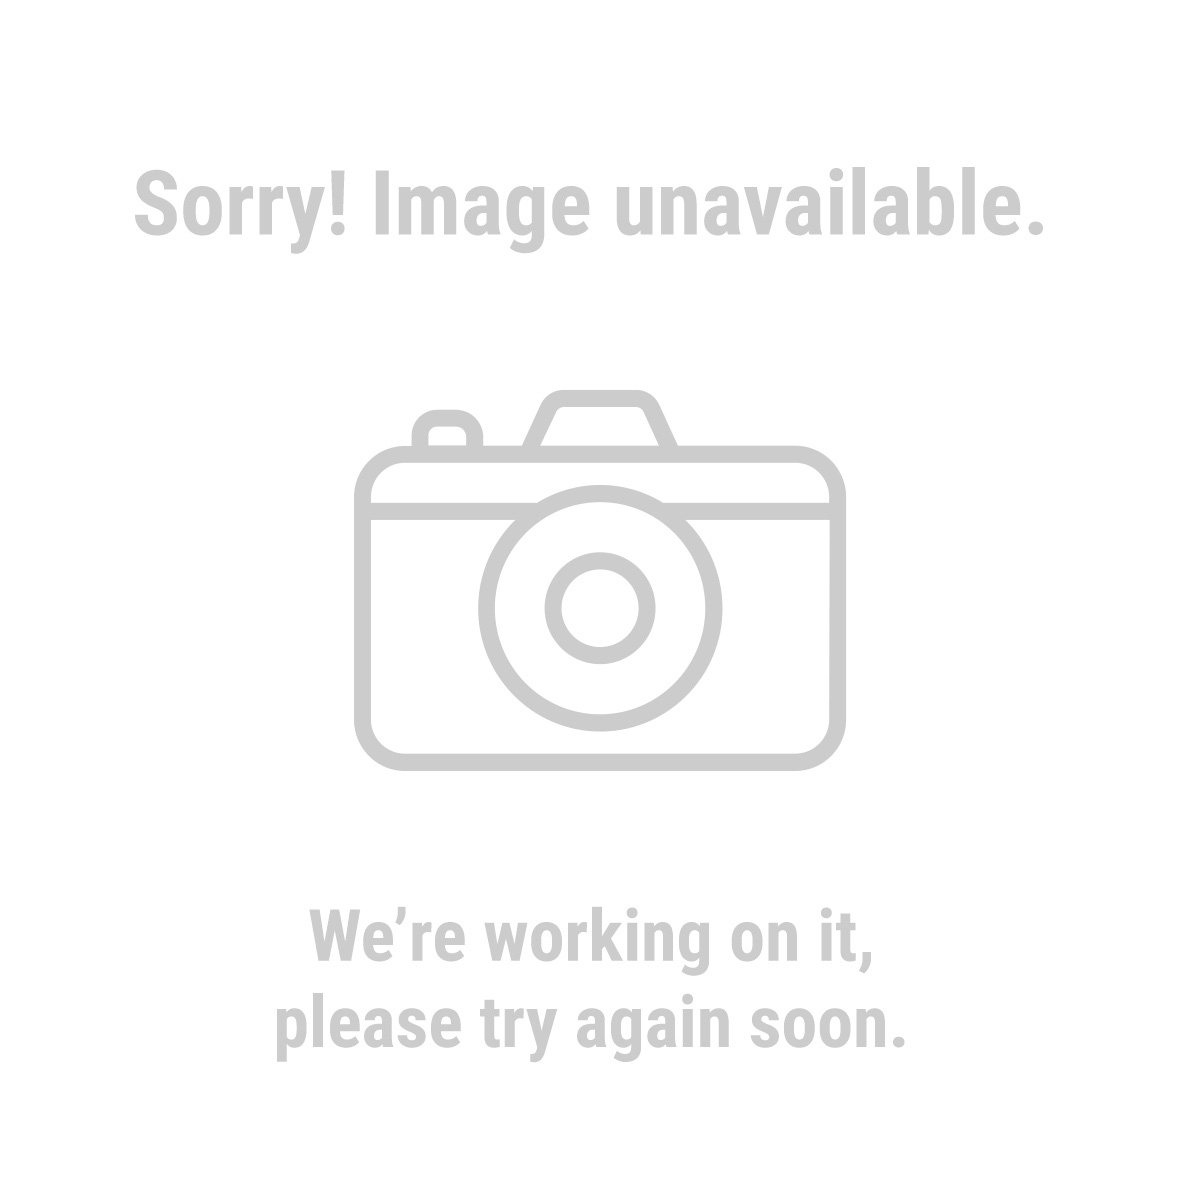 7.5 Amp Heavy Duty Electric Planer With Dust Bag  sc 1 st  Harbor Freight & Electric Planer - 5.5 Amp 3-1/4